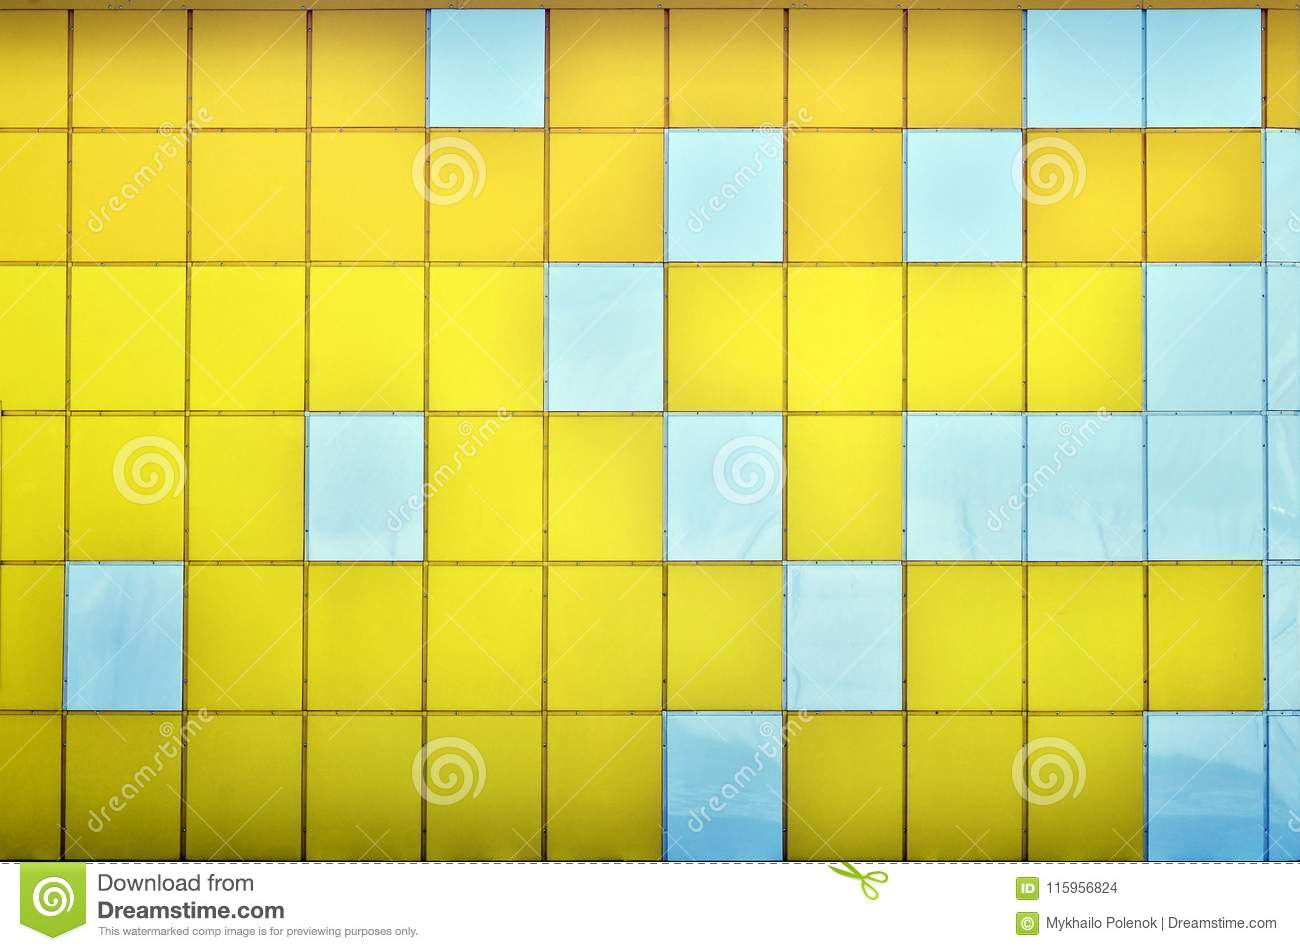 The Texture Of The Metal Wall, Framed In The Form Of Colored Squares ...